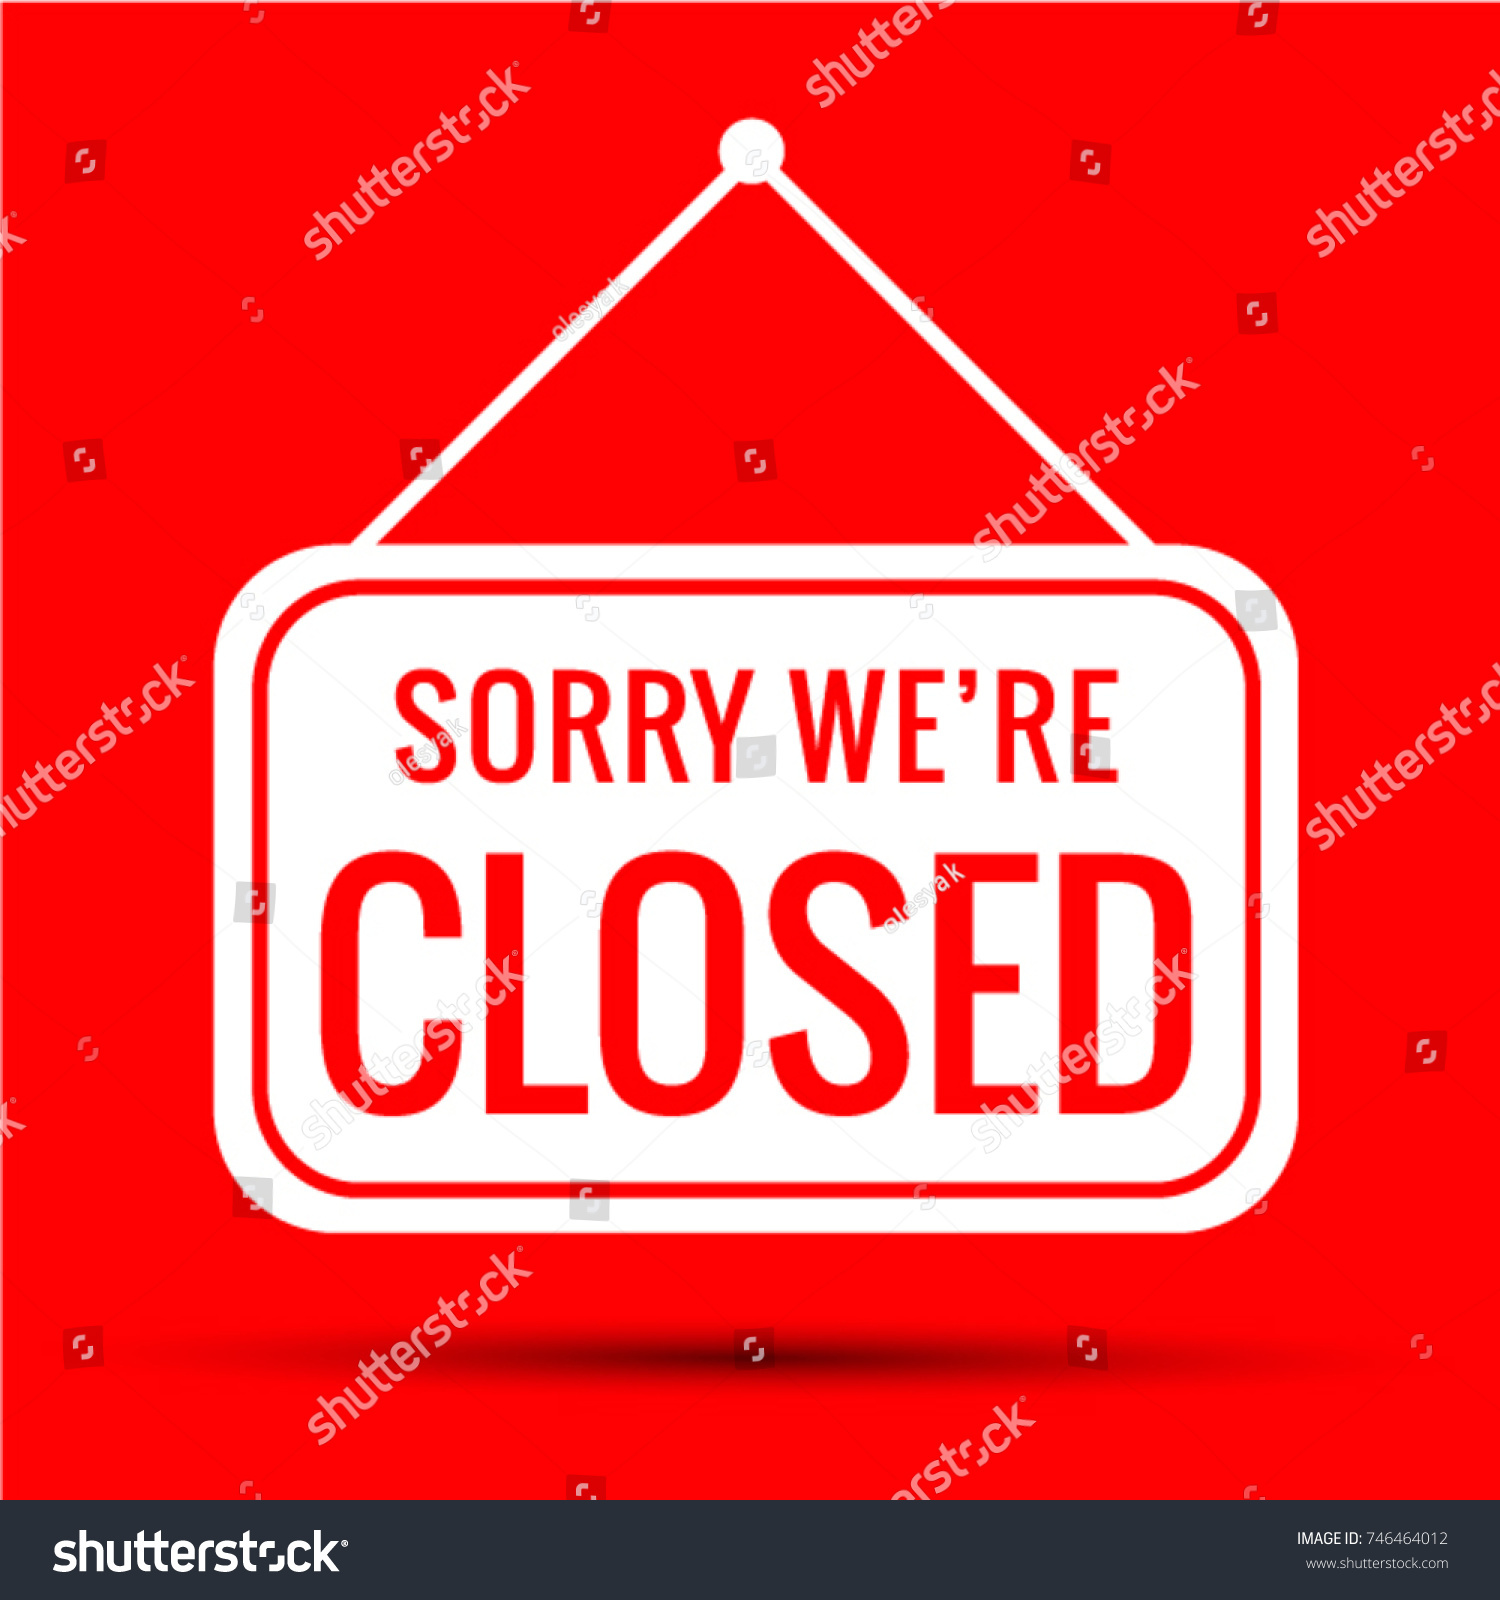 stock-vector--sign-sorry-we-re-closed-red-vector-eps-746464012.jpg